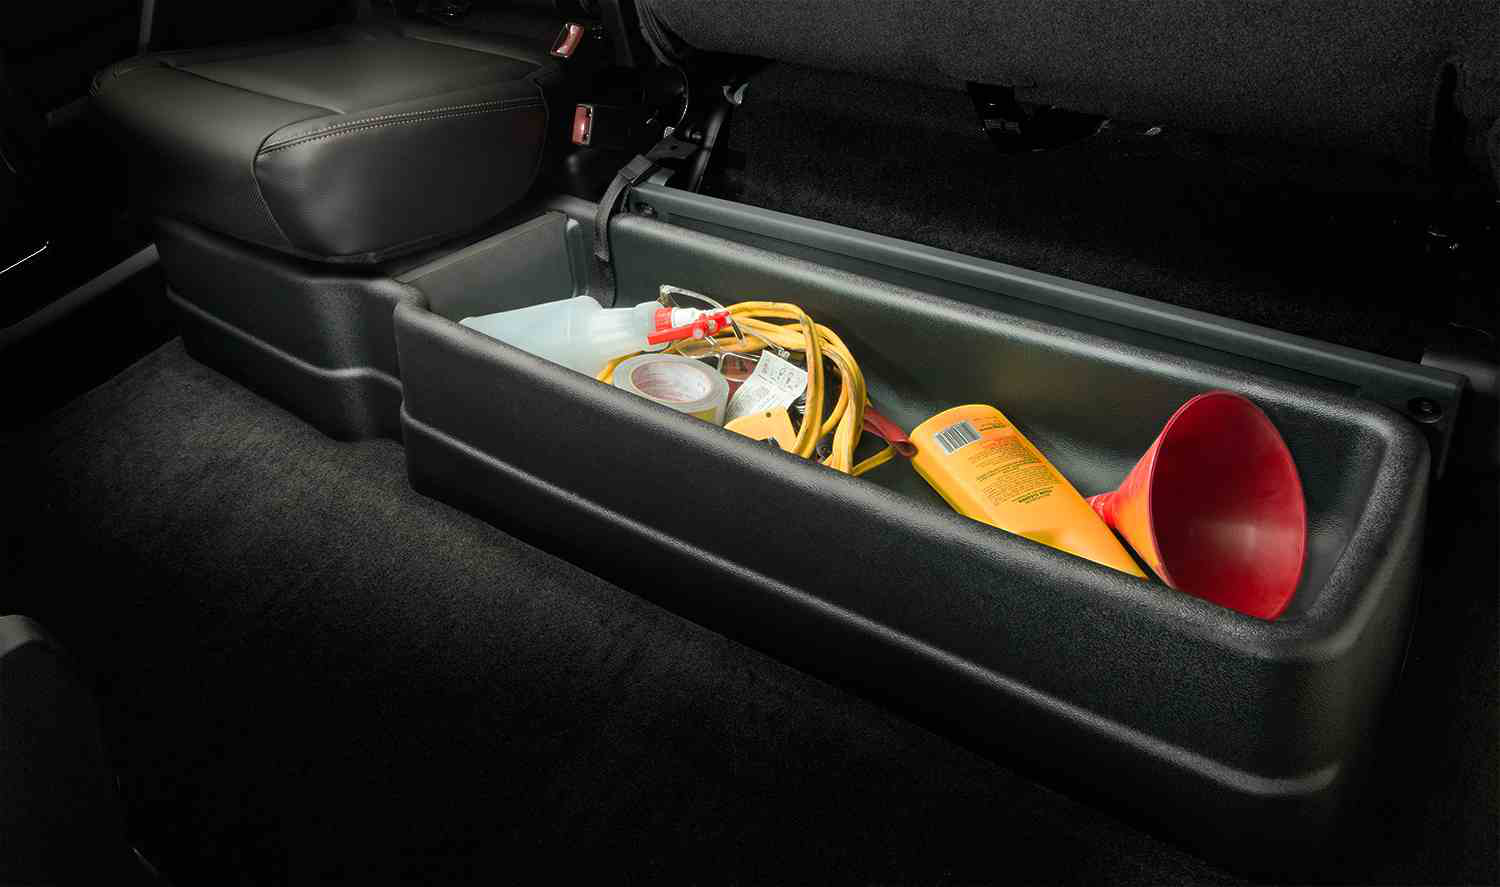 F150 Under Seat Storage >> F-150 SuperCrew Underseat Storage System | Medium Duty Work Truck Info